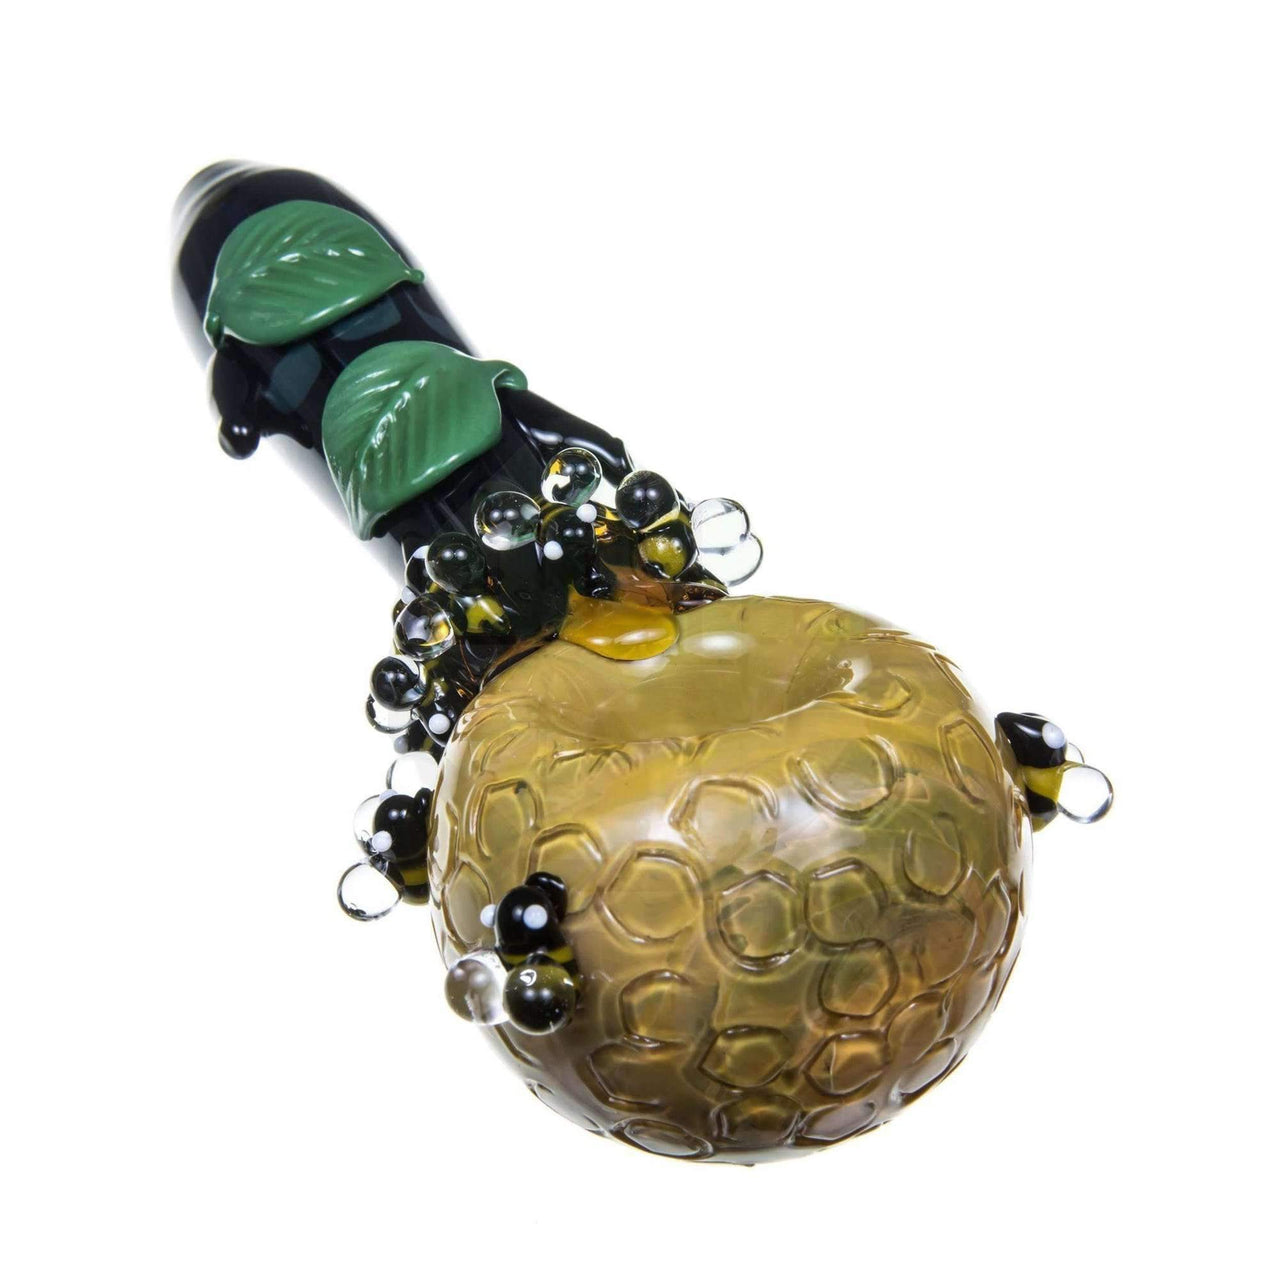 Empire Glassworks Beehive Themed Mini Spoon Pipe | The710Source.com